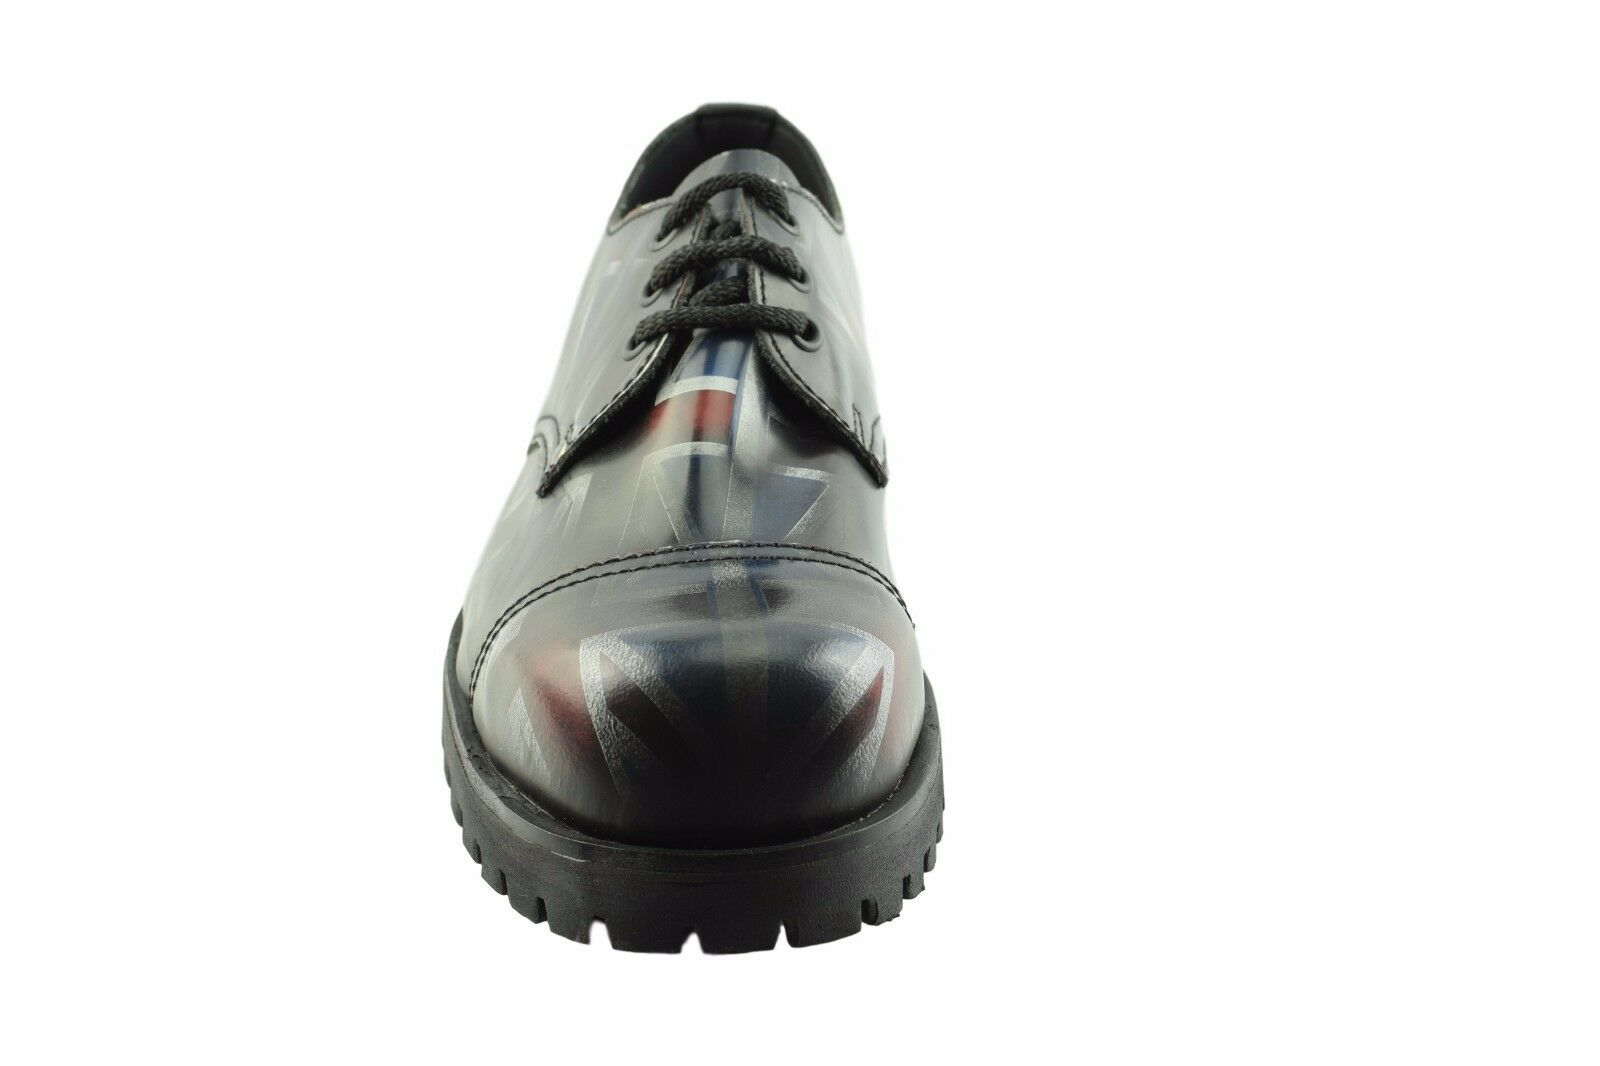 Steel Ground Leather Unon Jack Flag Flag Flag 3 Eyelet Box Safety Under Cap Rock Shoes 0943c4